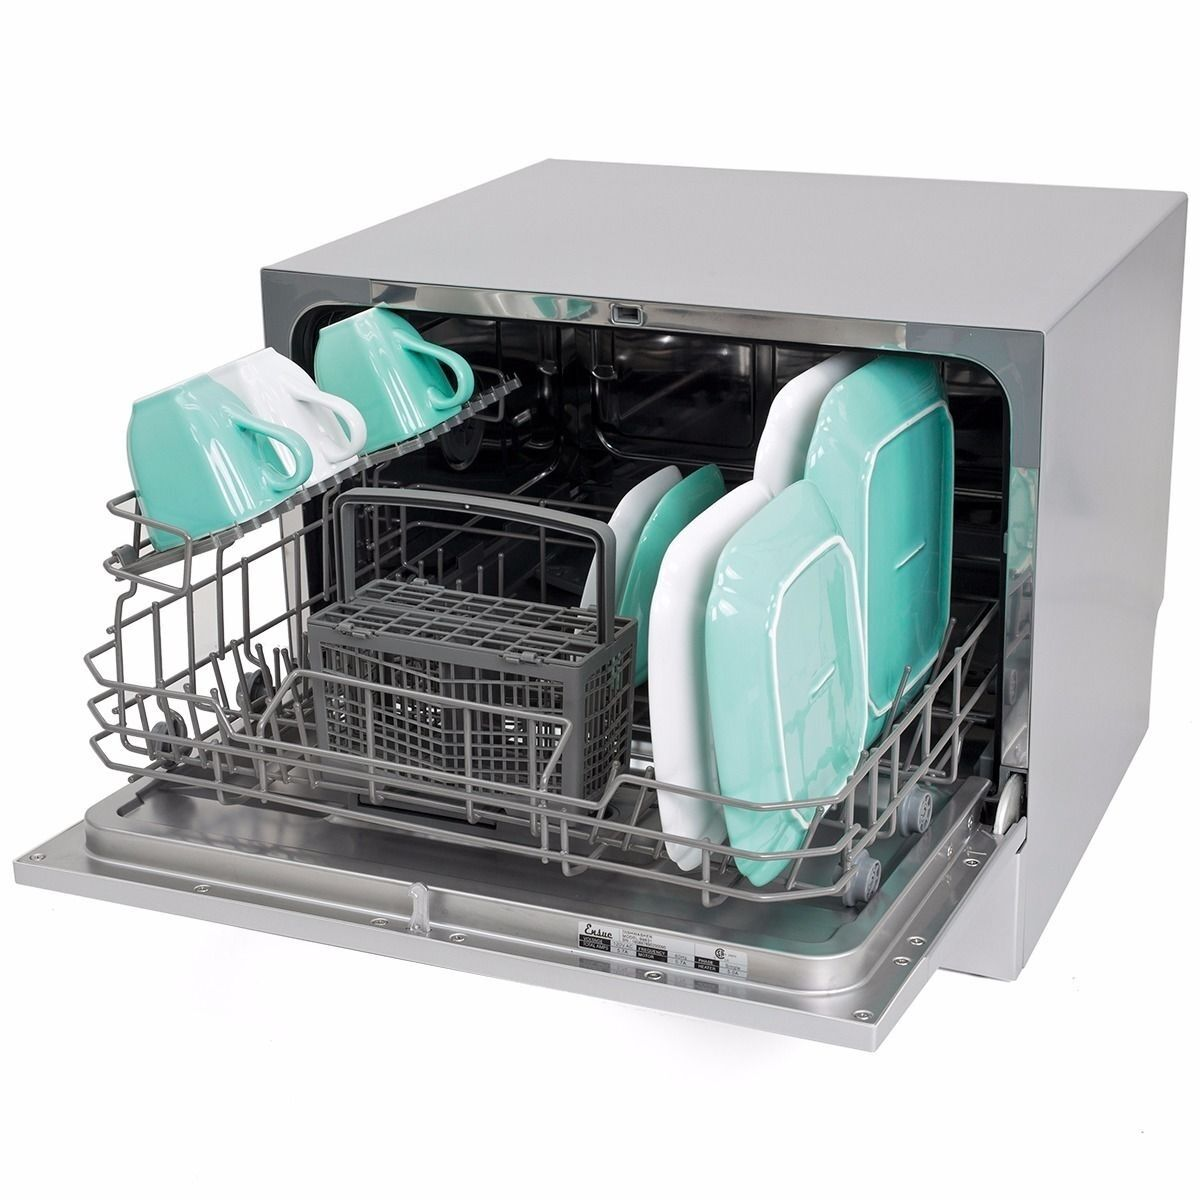 Apartment Dishwasher: Countertop Dishwasher Silver Portable Compact Energy Star